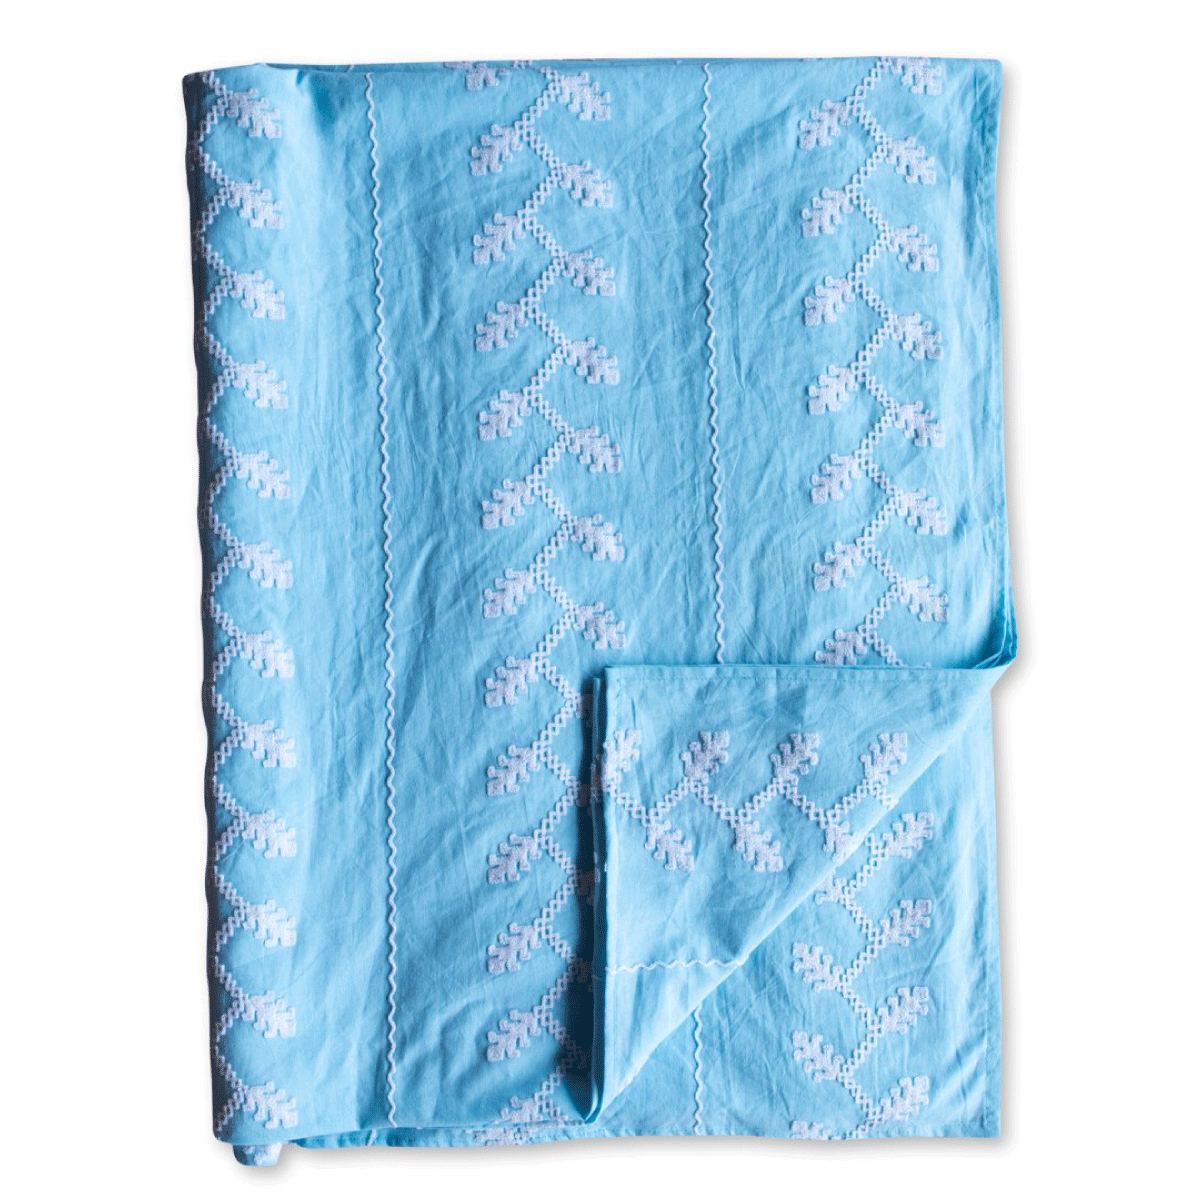 Helena Embroidered Textile - Azure